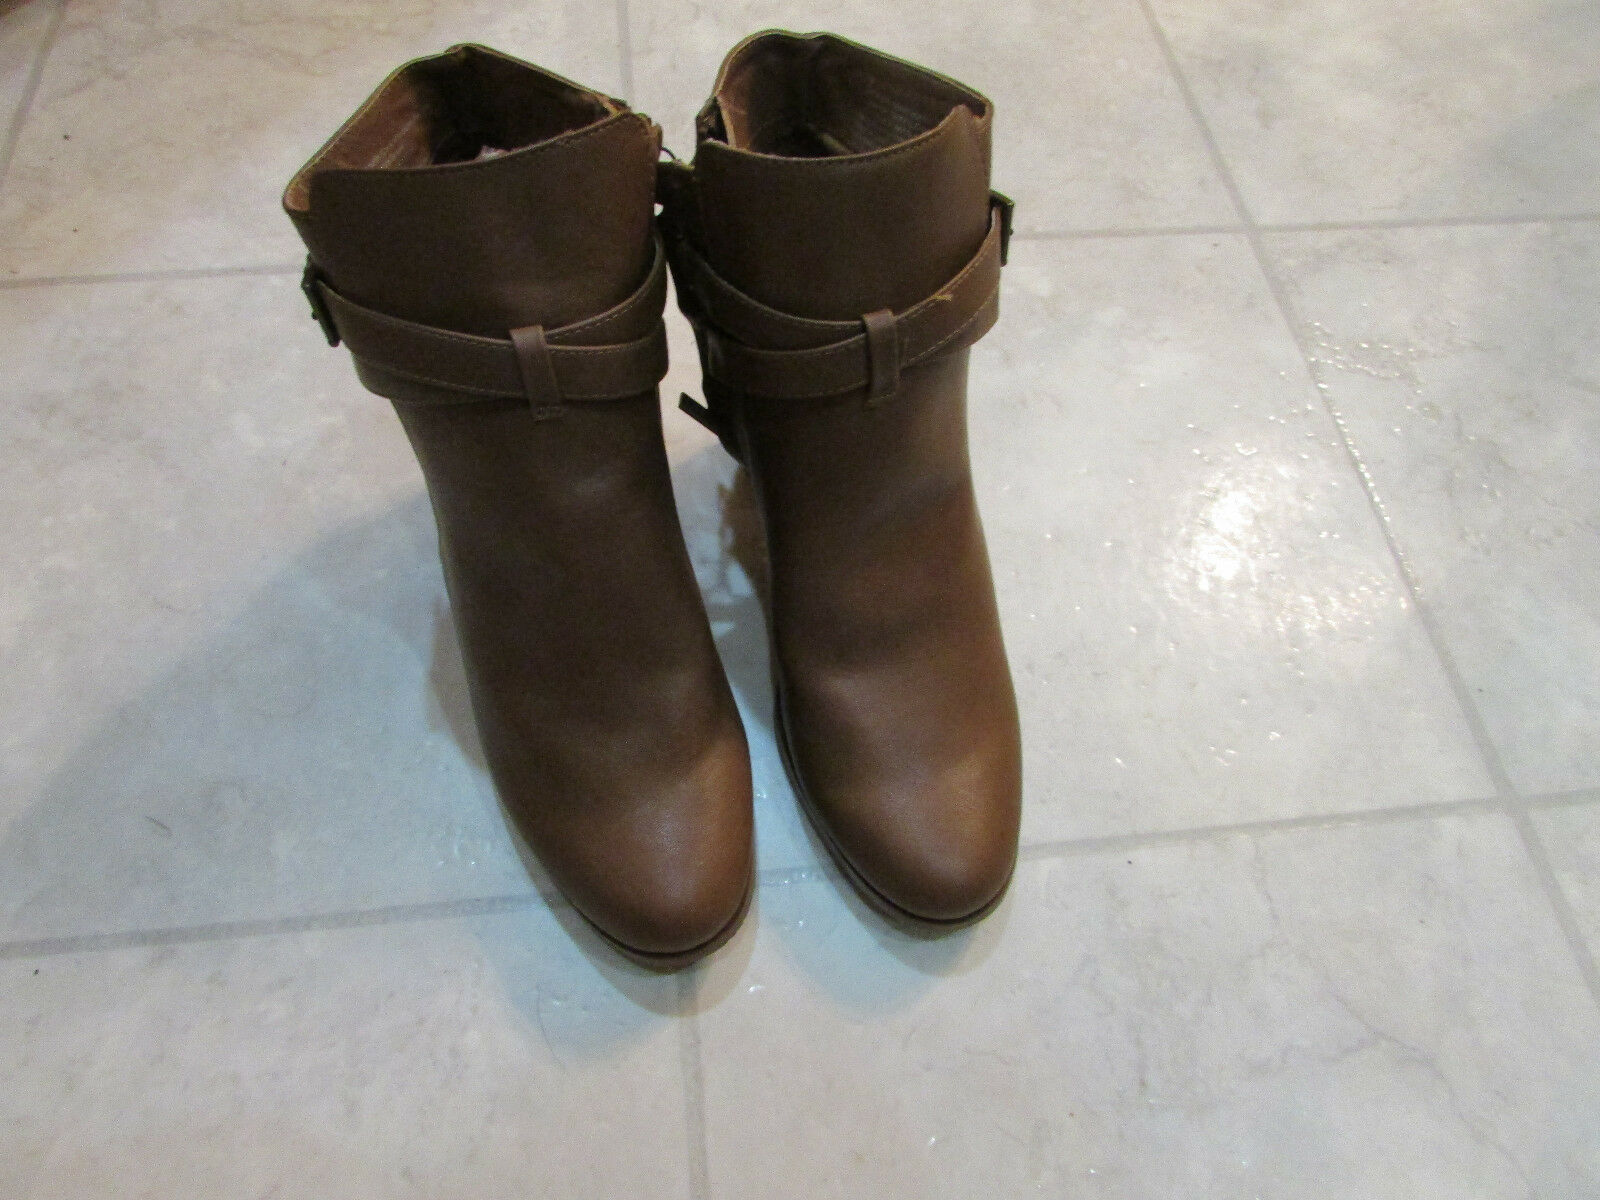 New With Box Kenneth Cole Reaction Womens Booties-Size-8.5-color-Brown